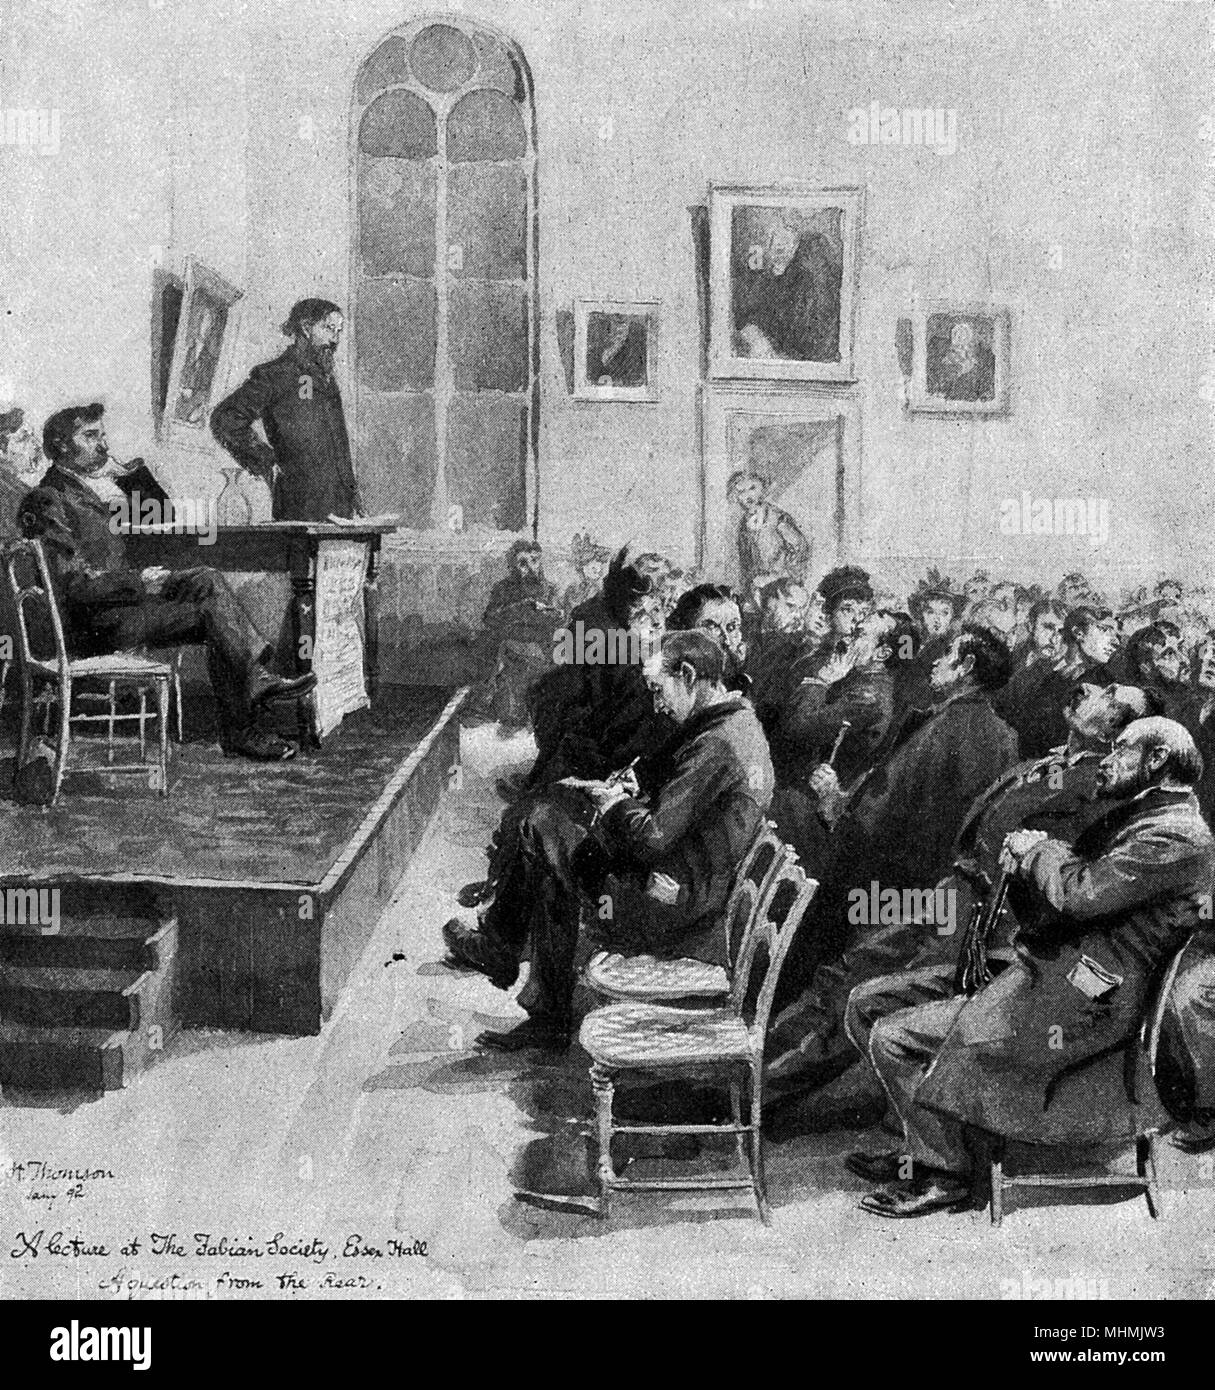 A meeting of the FABIAN SOCIETY at Essex Hall, London: the society favours the gradual, peaceful introduction of socialism, rather than by violent revolution     Date: 1892 - Stock Image